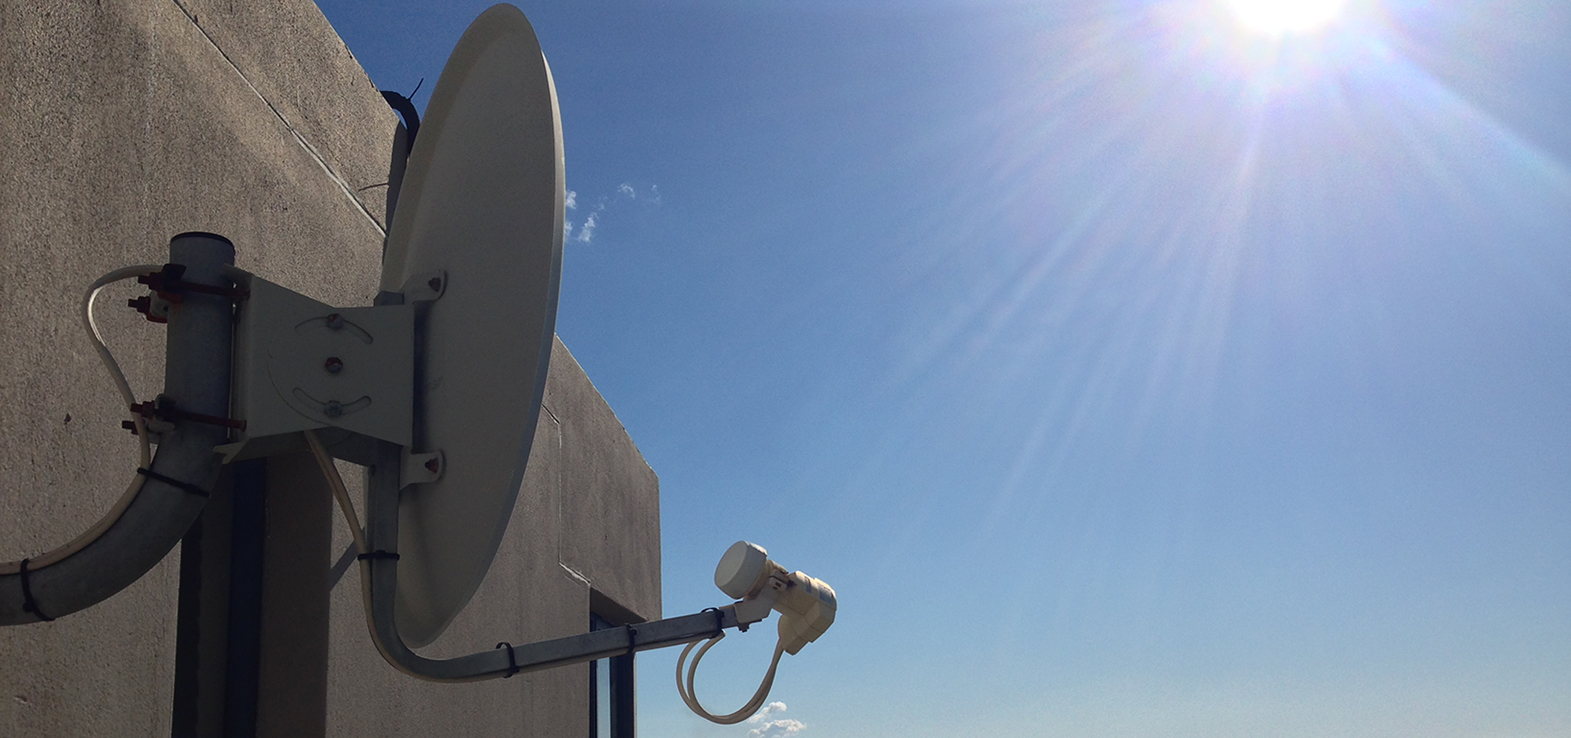 Satellite dish installations and replacements